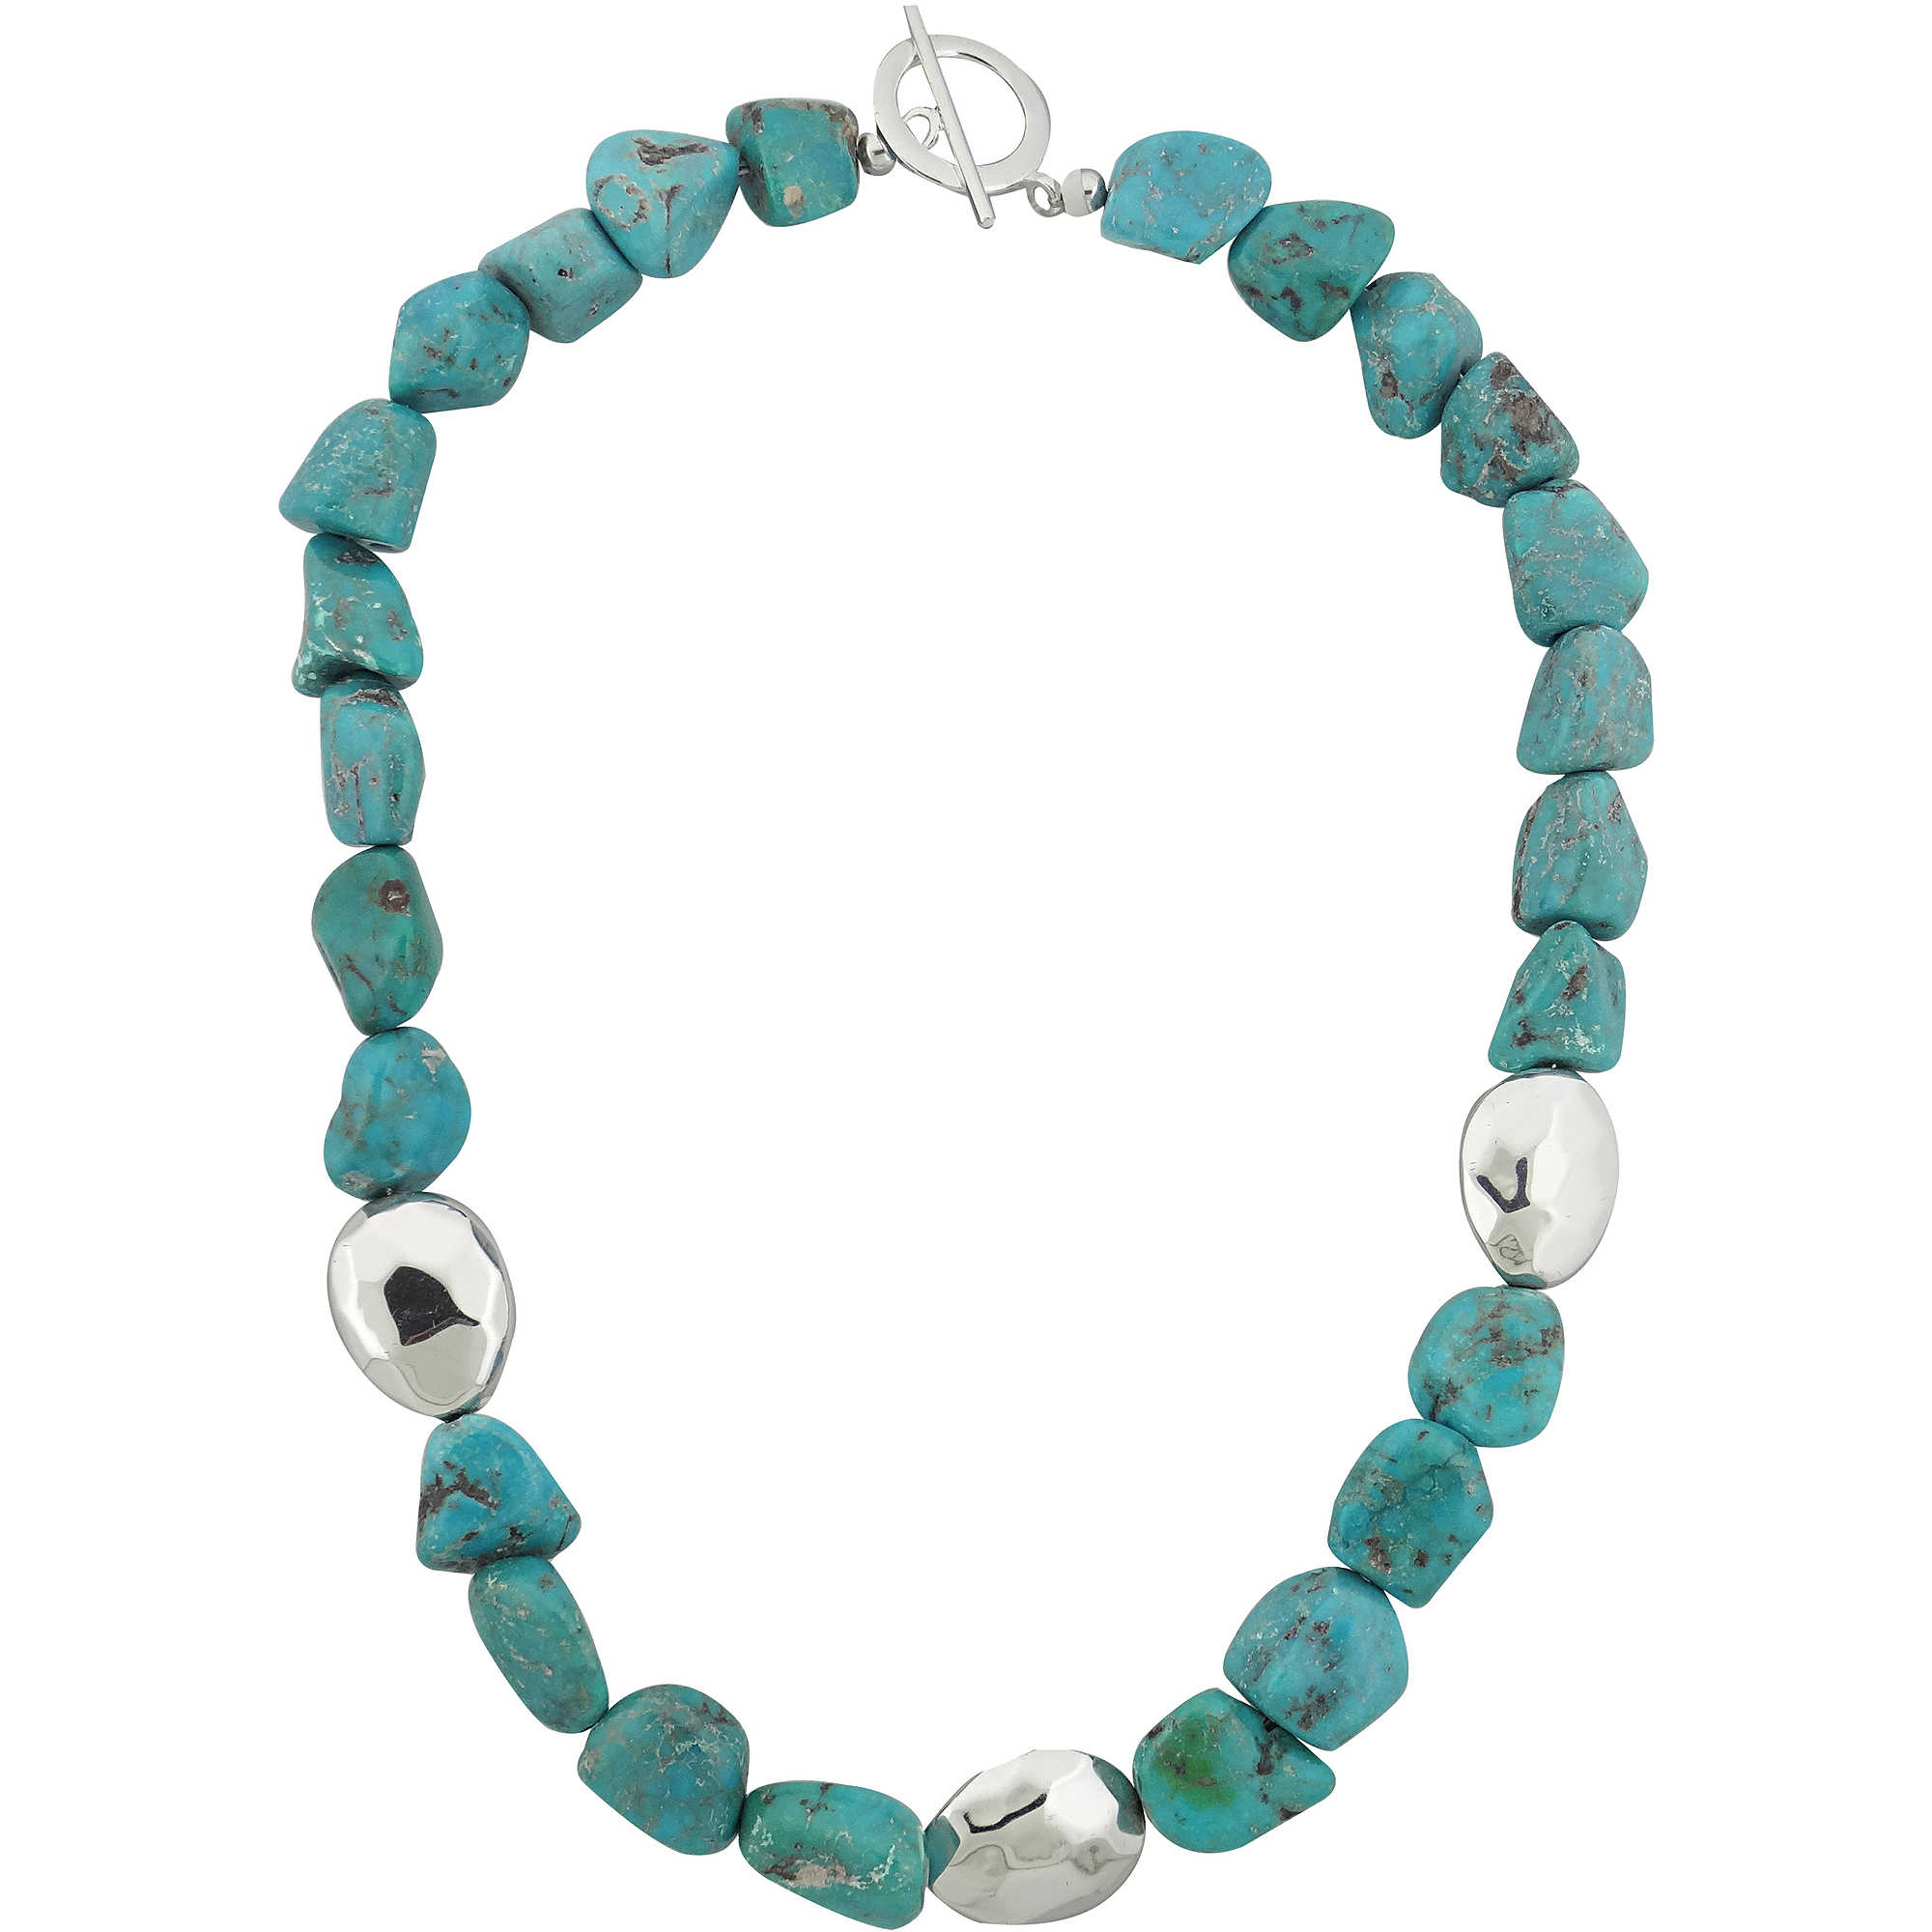 "Beaded Turquoise Sterling Silver Necklace, 16"" with Extender"